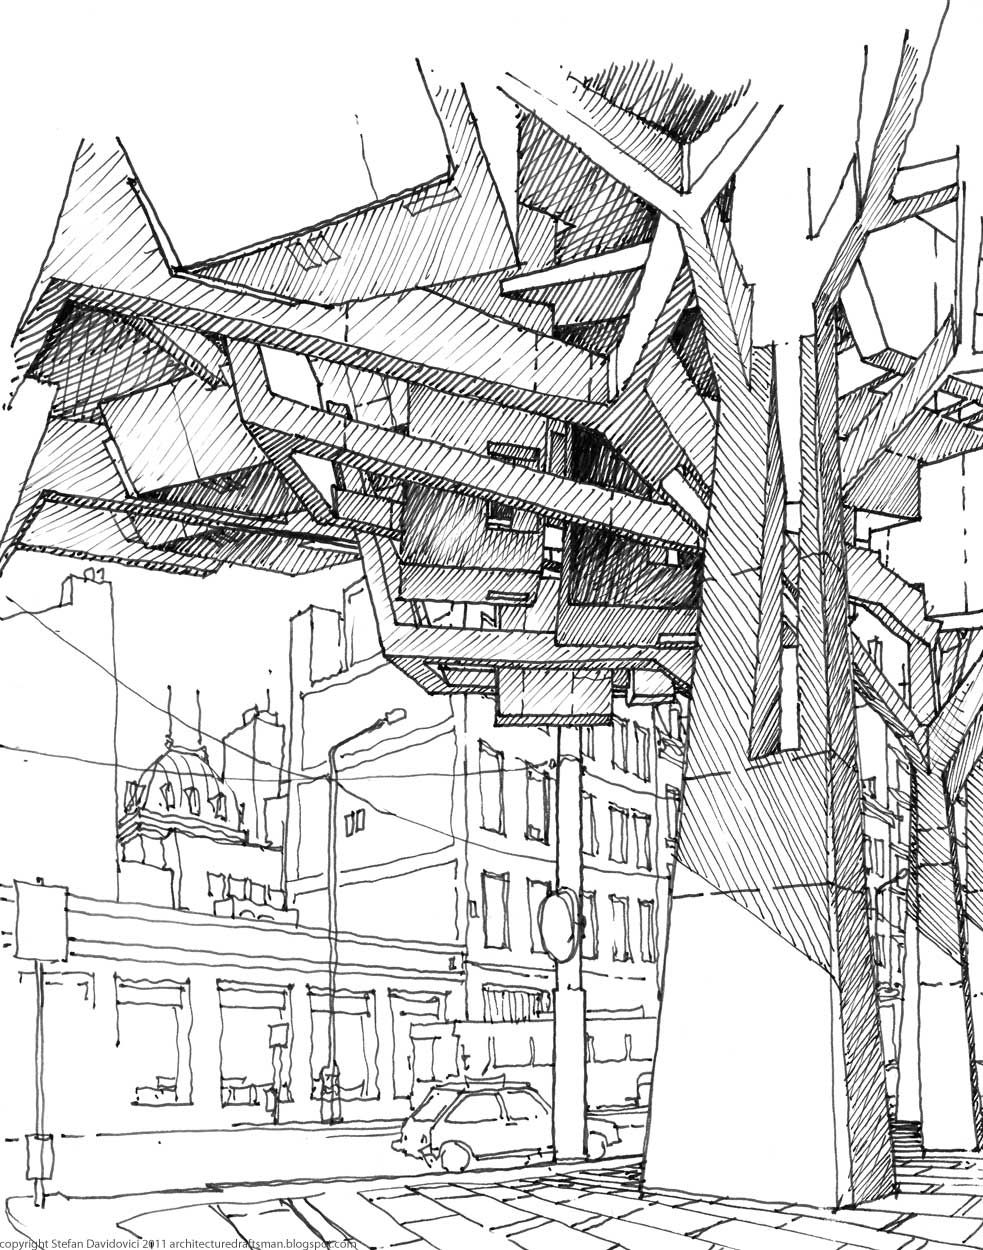 The Architecture Draftsman Architecture Drawing Architecture Sketch Architectural Sketch